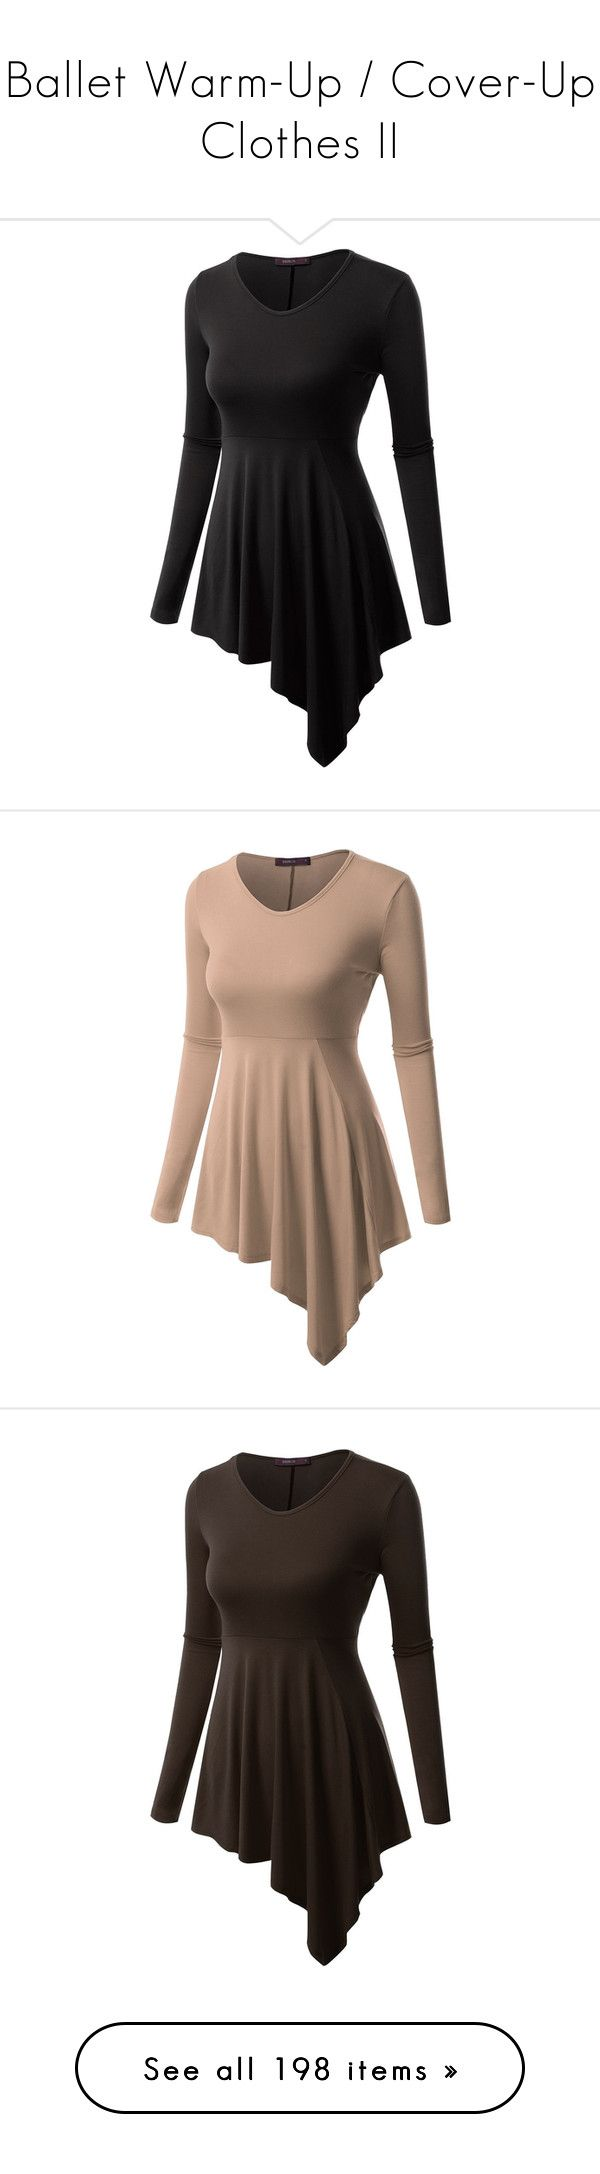 """""""Ballet Warm-Up / Cover-Up Clothes II"""" by gymholic ❤ liked on Polyvore featuring dresses, longsleeve dress, round neck dress, draped dress, long sleeve drape dress, round neckline dress, round neck long sleeve dress, brown dress, long sleeve dress and green long sleeve dress"""